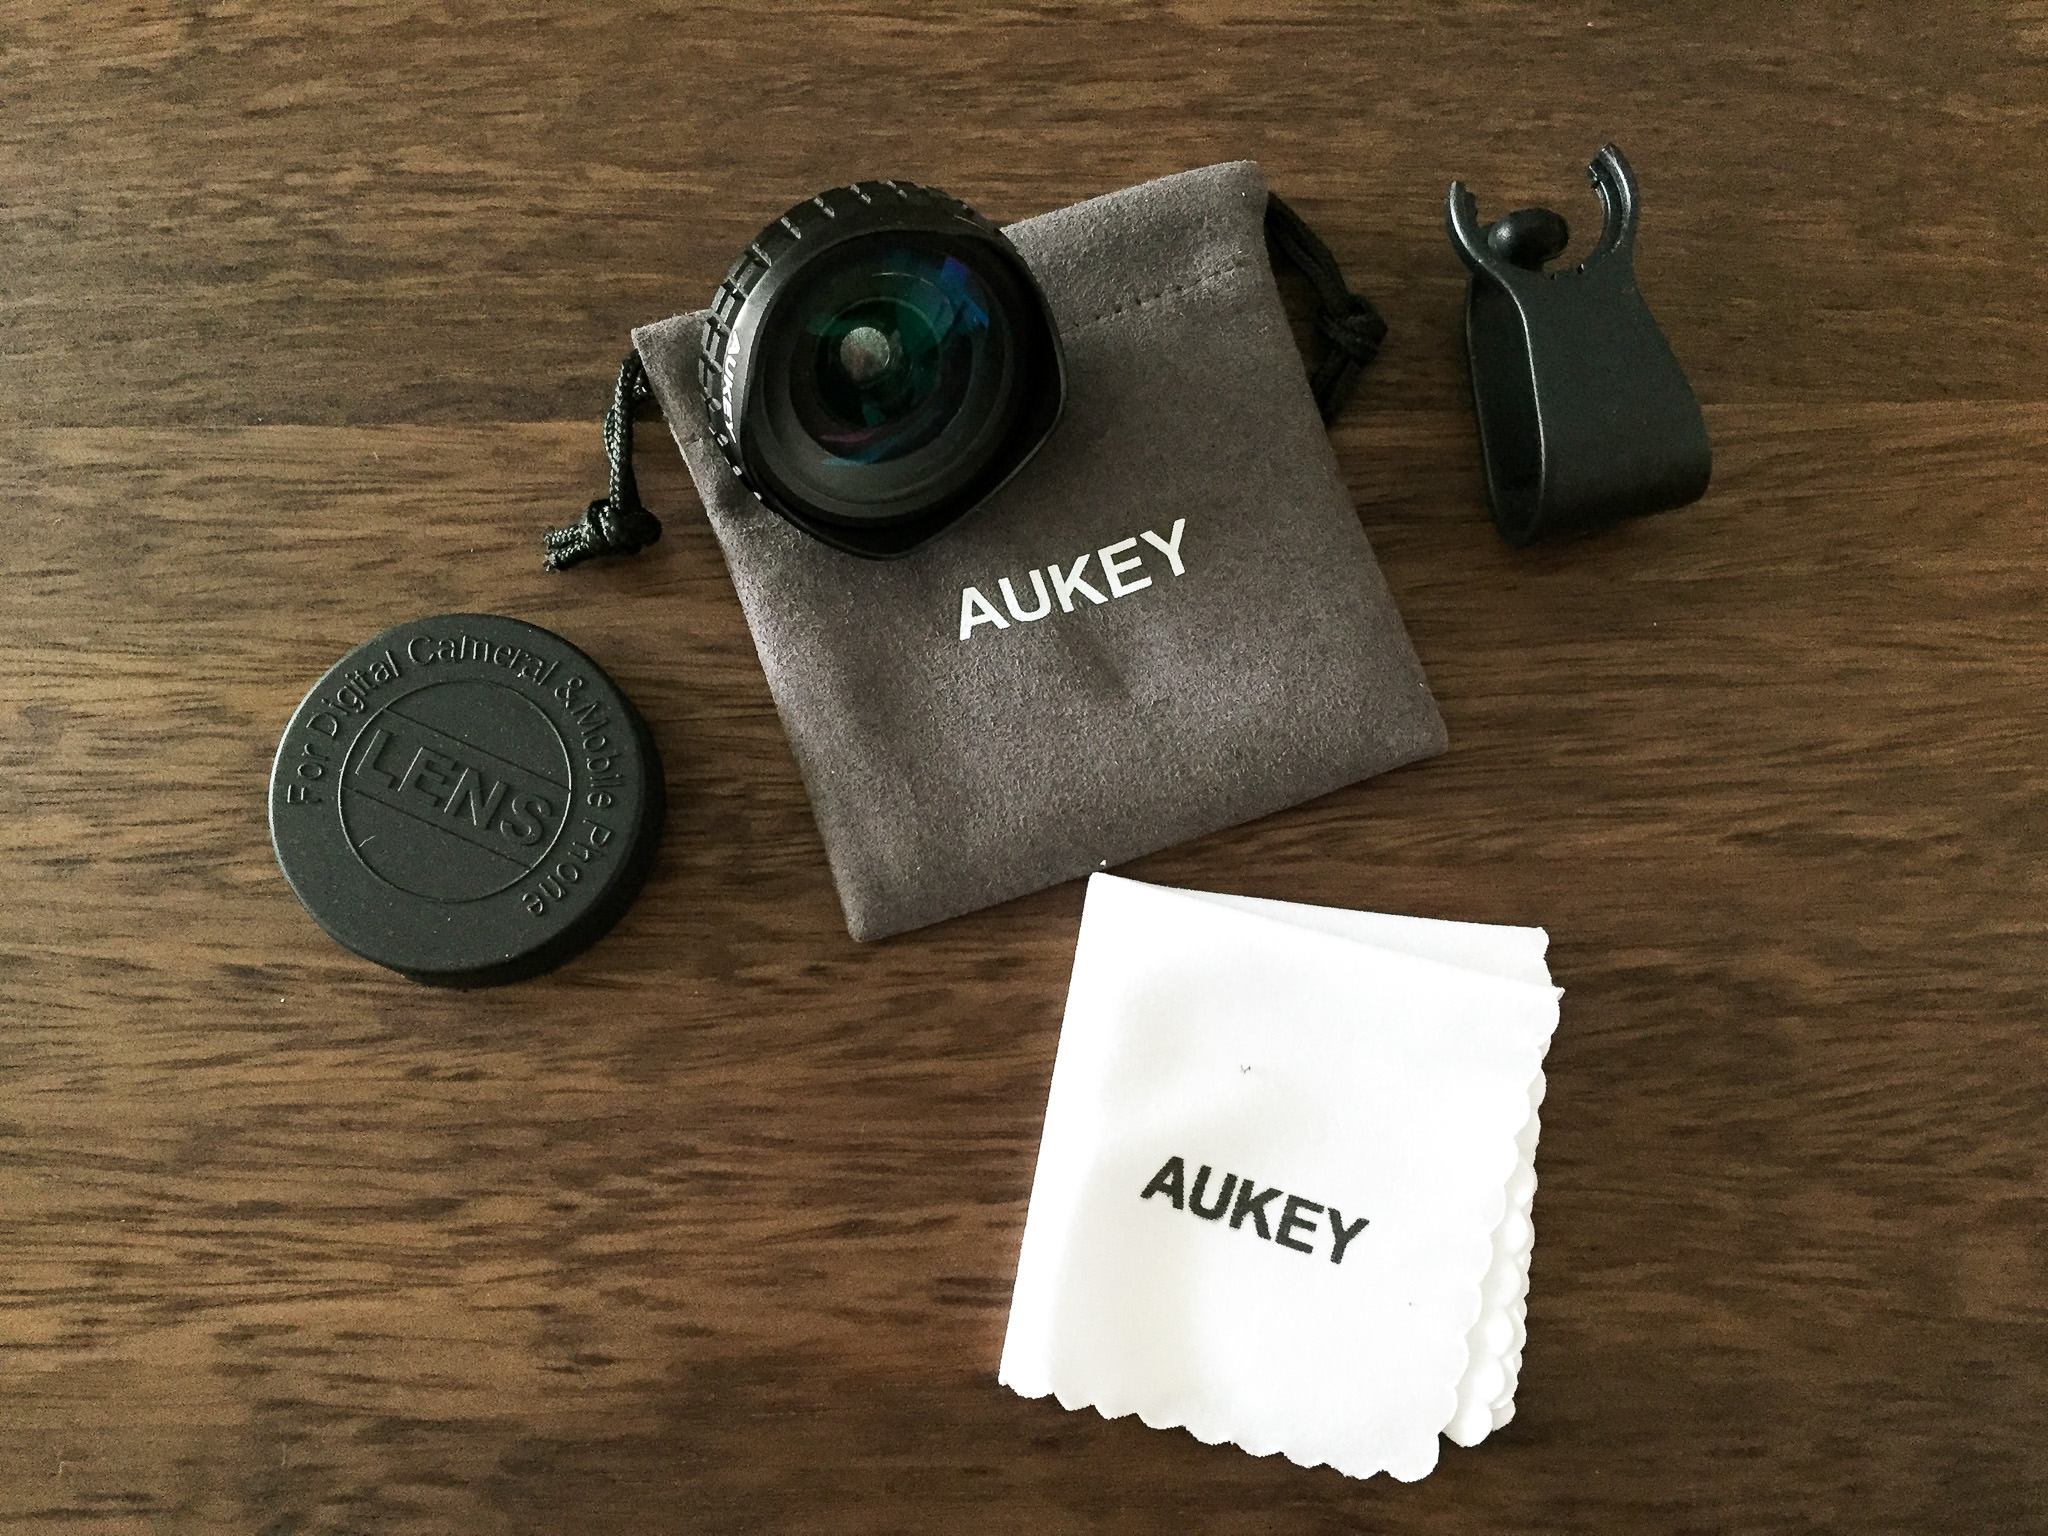 timeless design 6d451 76aac Aukey Cell Phone Camera Lens Review - Photography Life